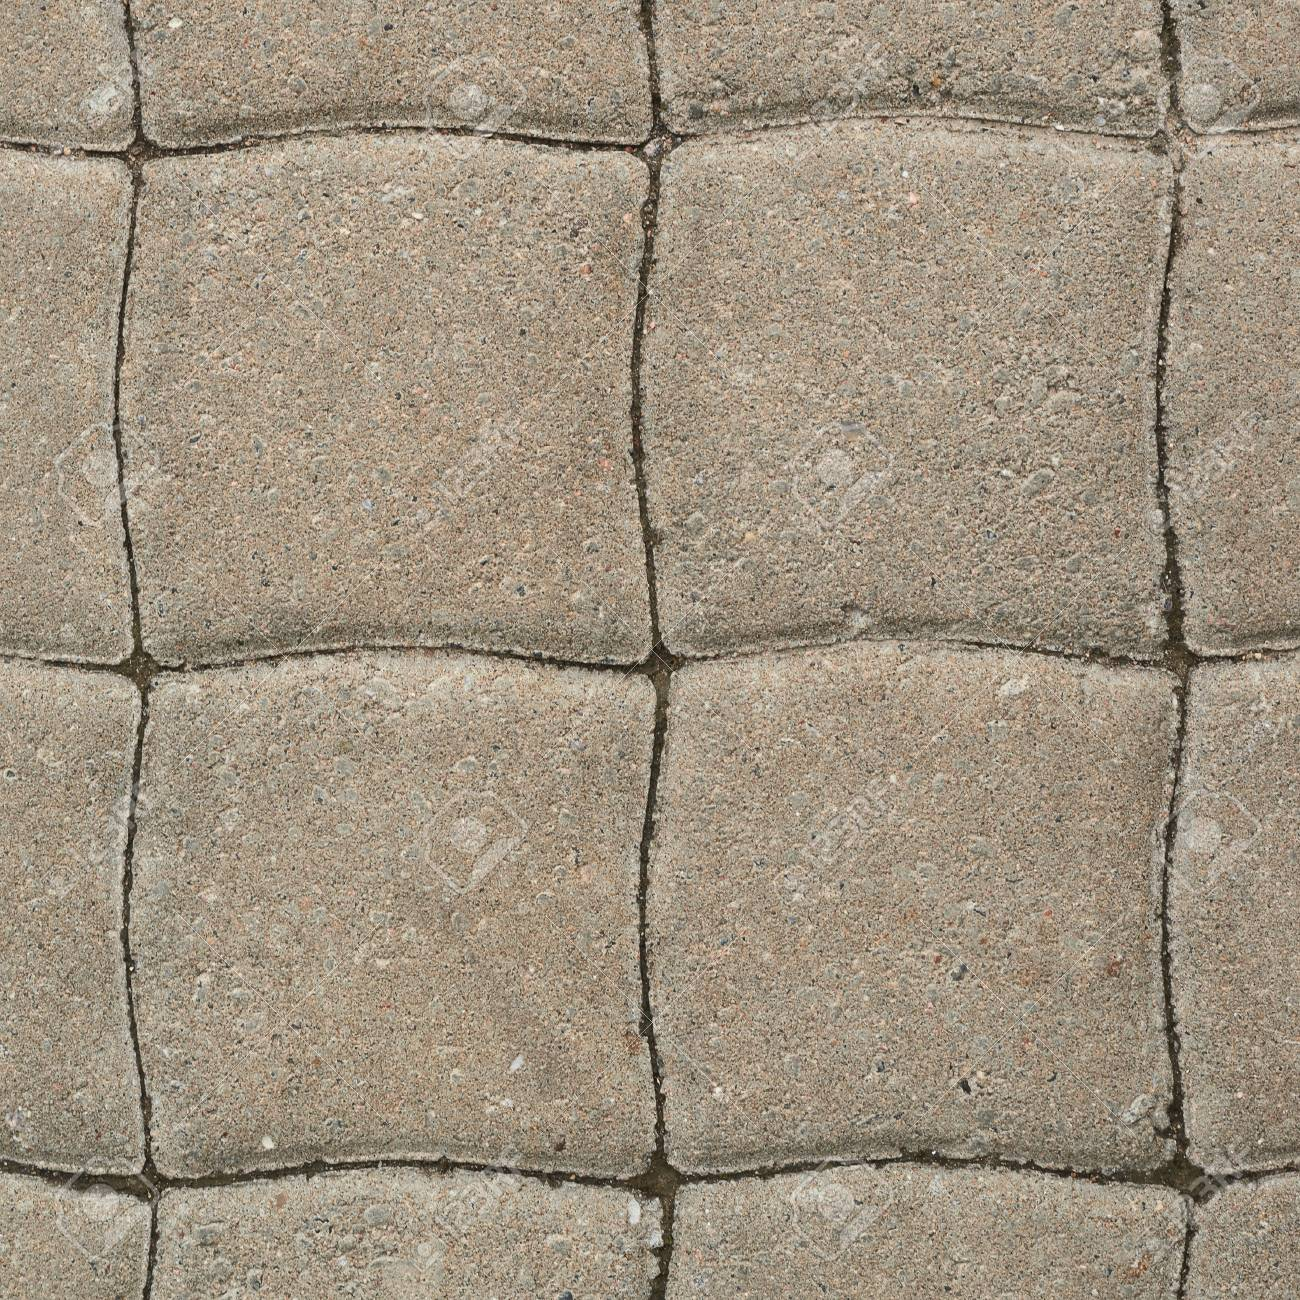 Tiled with paving stone bricks path's fragment as an abstract Stock Photo - 22689422